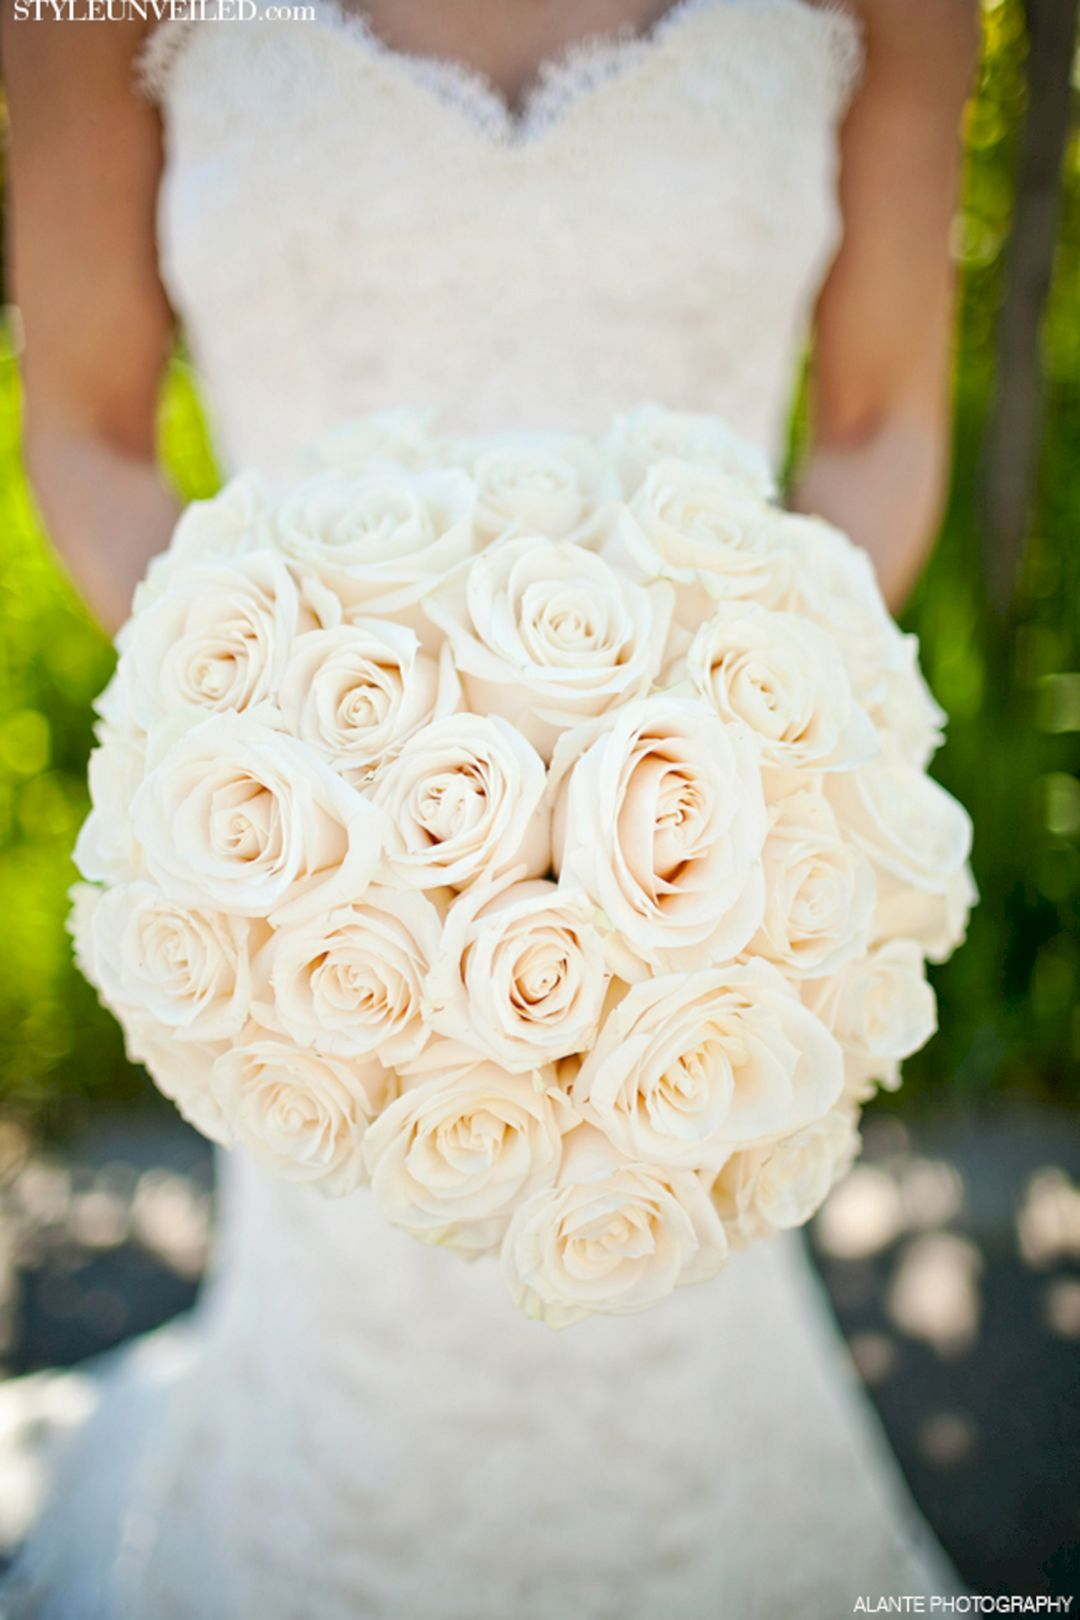 50 top ideas white bouquet wedding ideas for your special